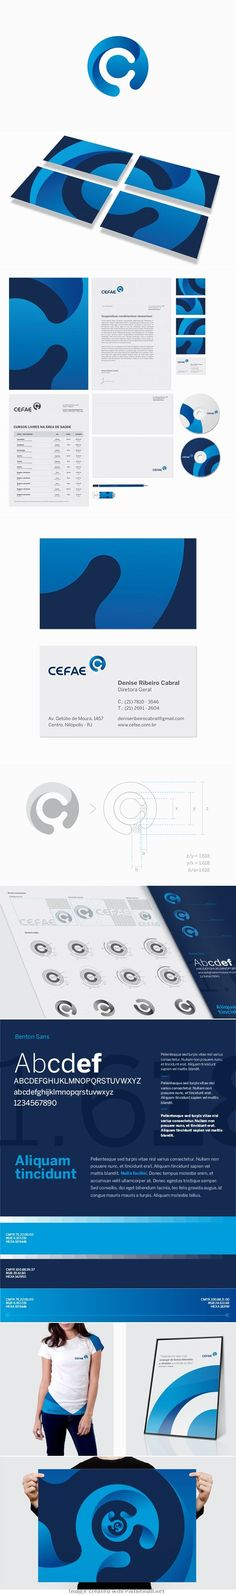 CEFAE #branding #identity Interesting but confusing. I don't think I'd take this approach but I've seen others who do it well: